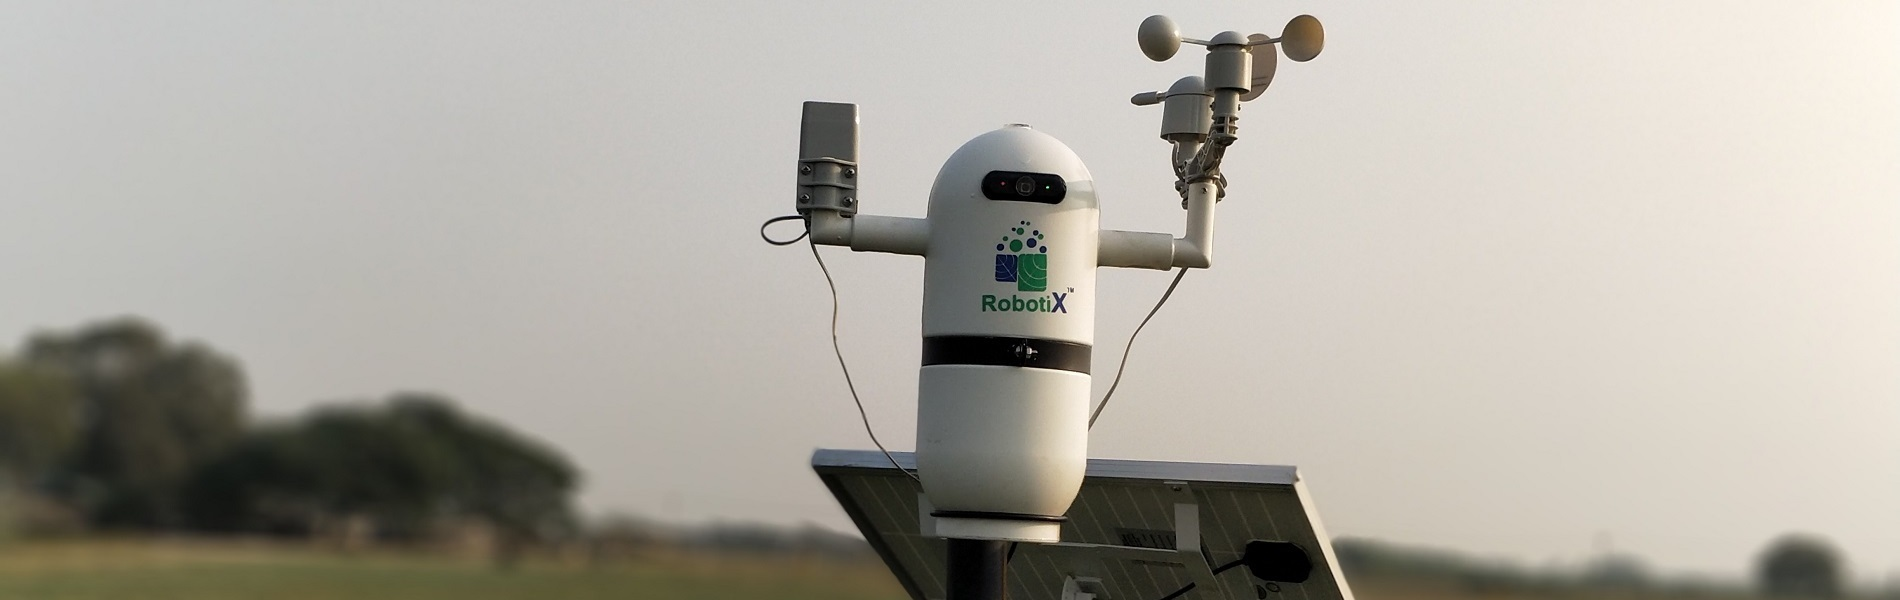 Lets Bring IoT to Agri Fields